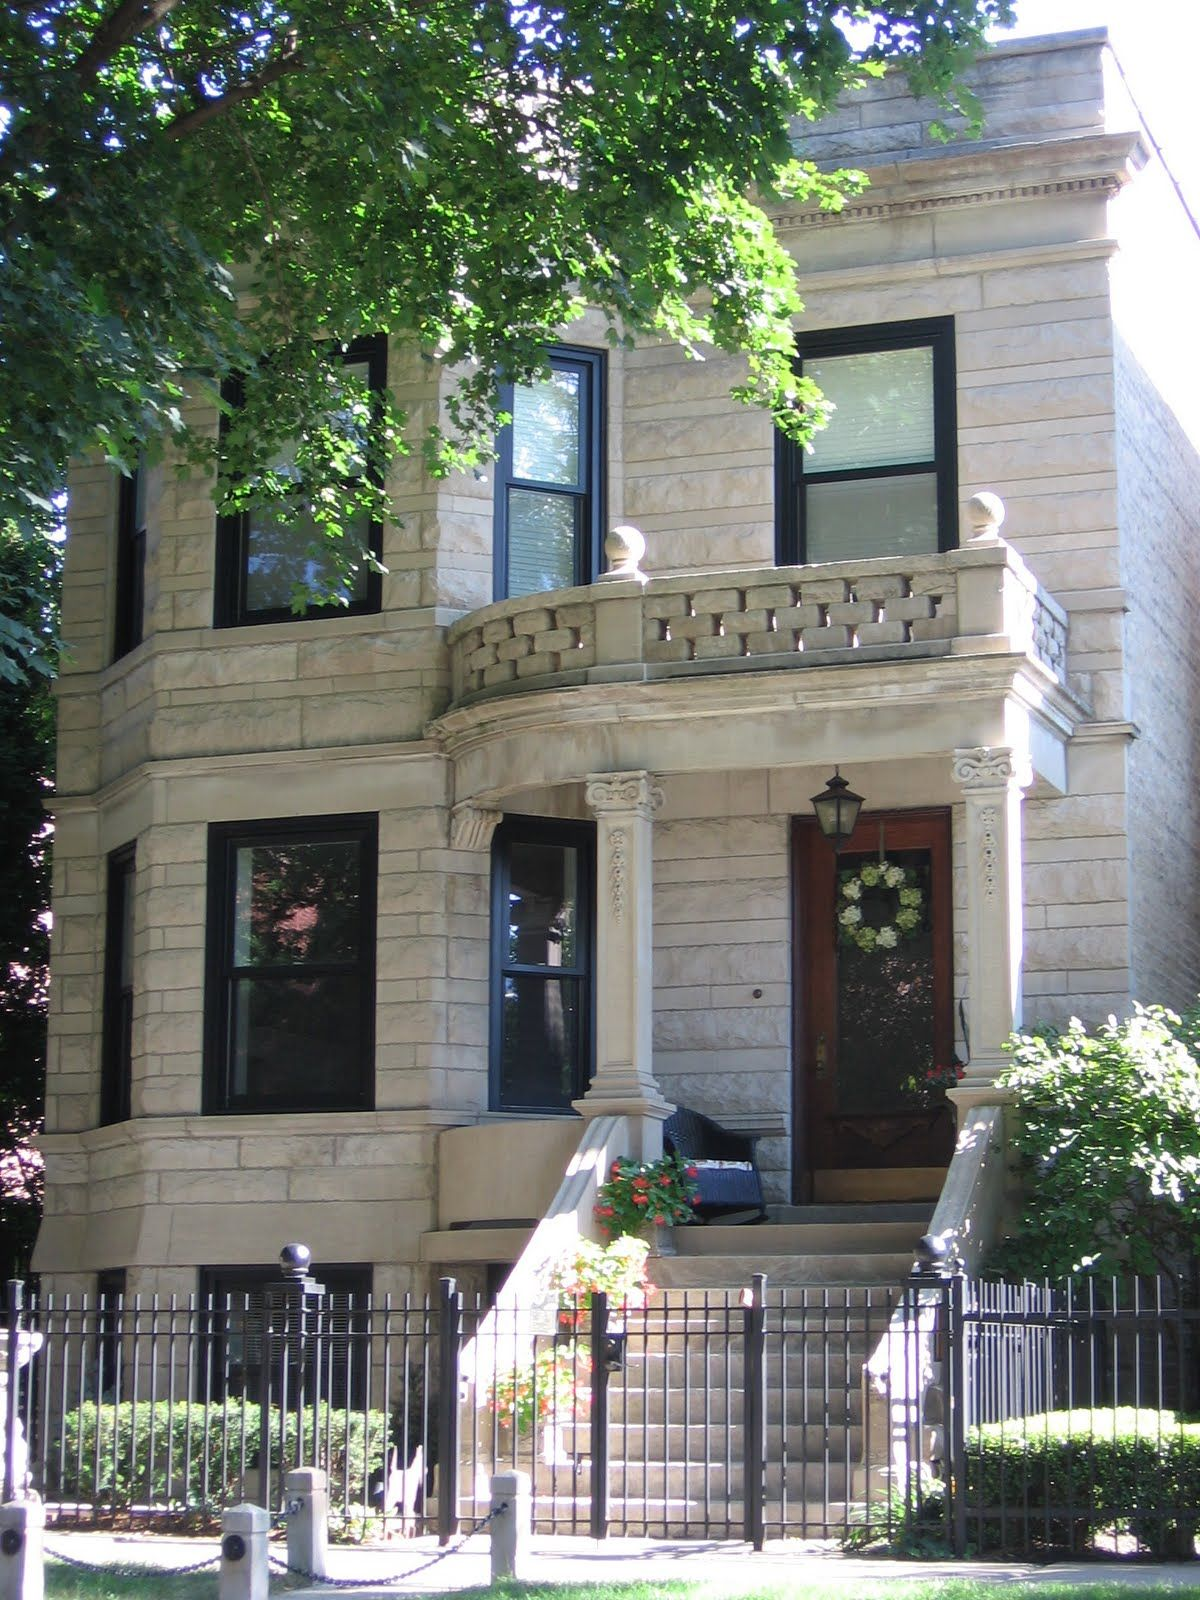 Greystone In Chicago Something About The Way These Houses Look I Just Love Brownstone Homes Chicago Buildings Architecture